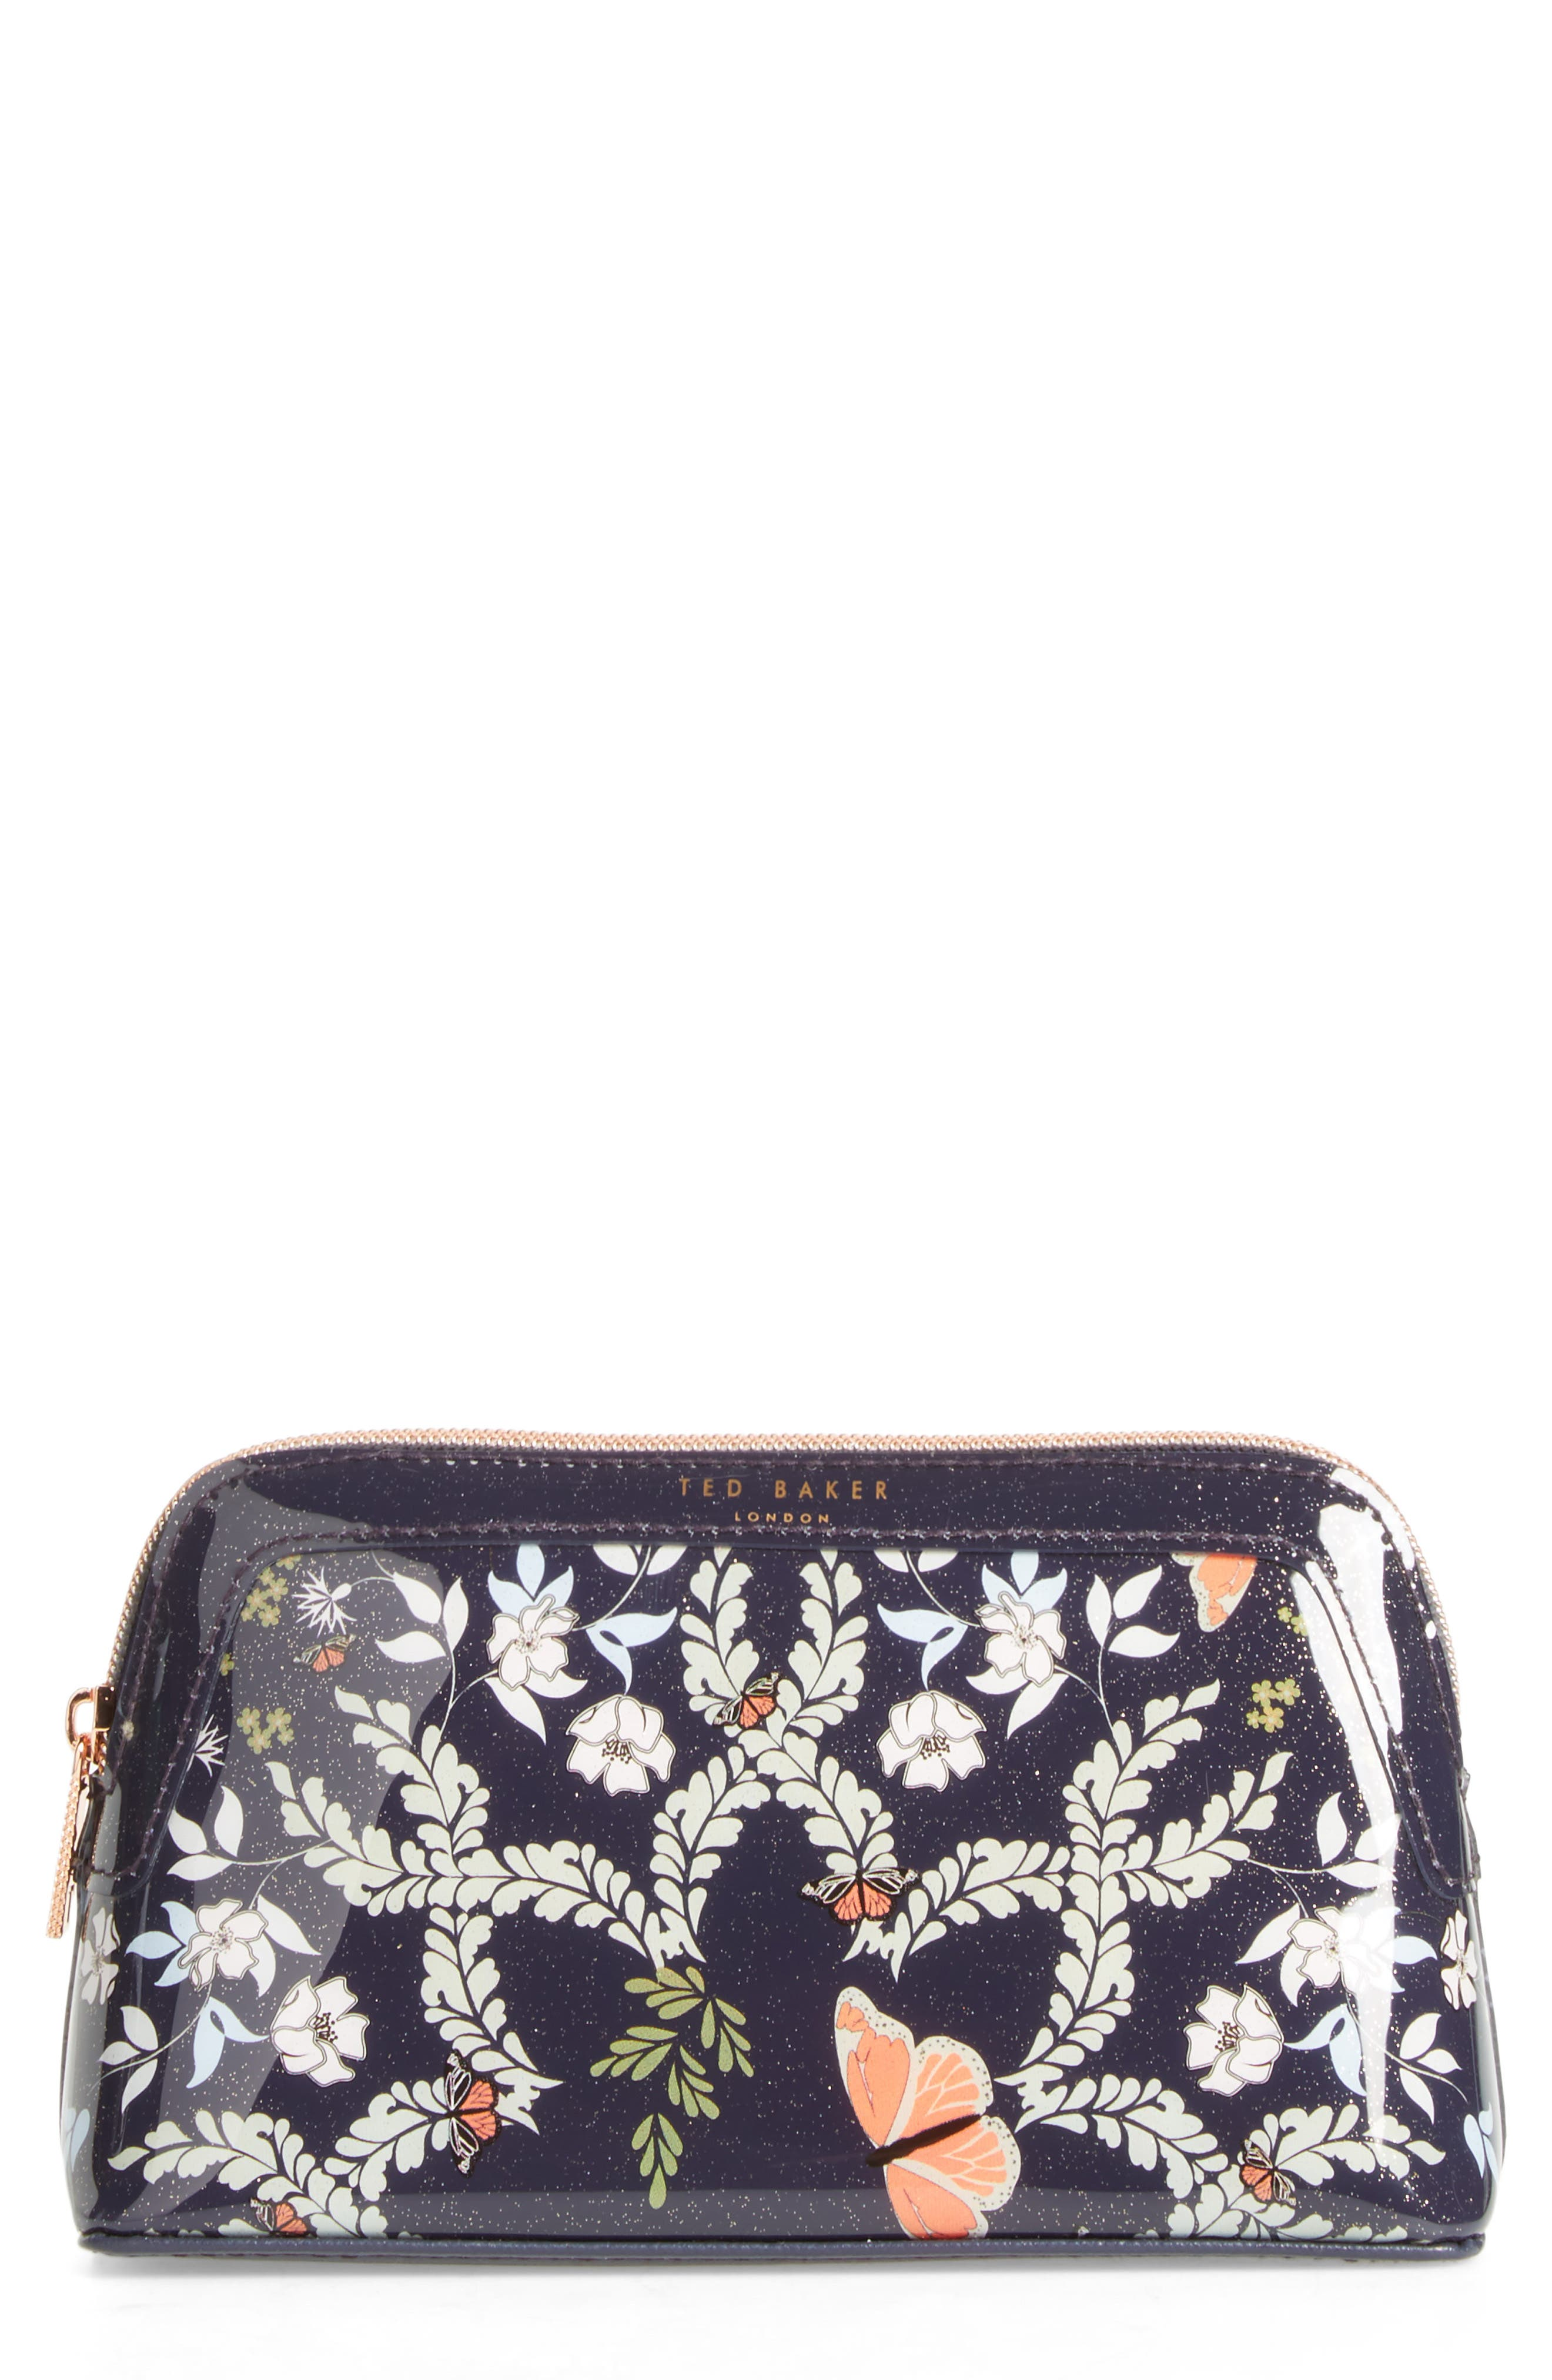 Ted Baker London Lennita- Kyoto Gardens Cosmetics Bag